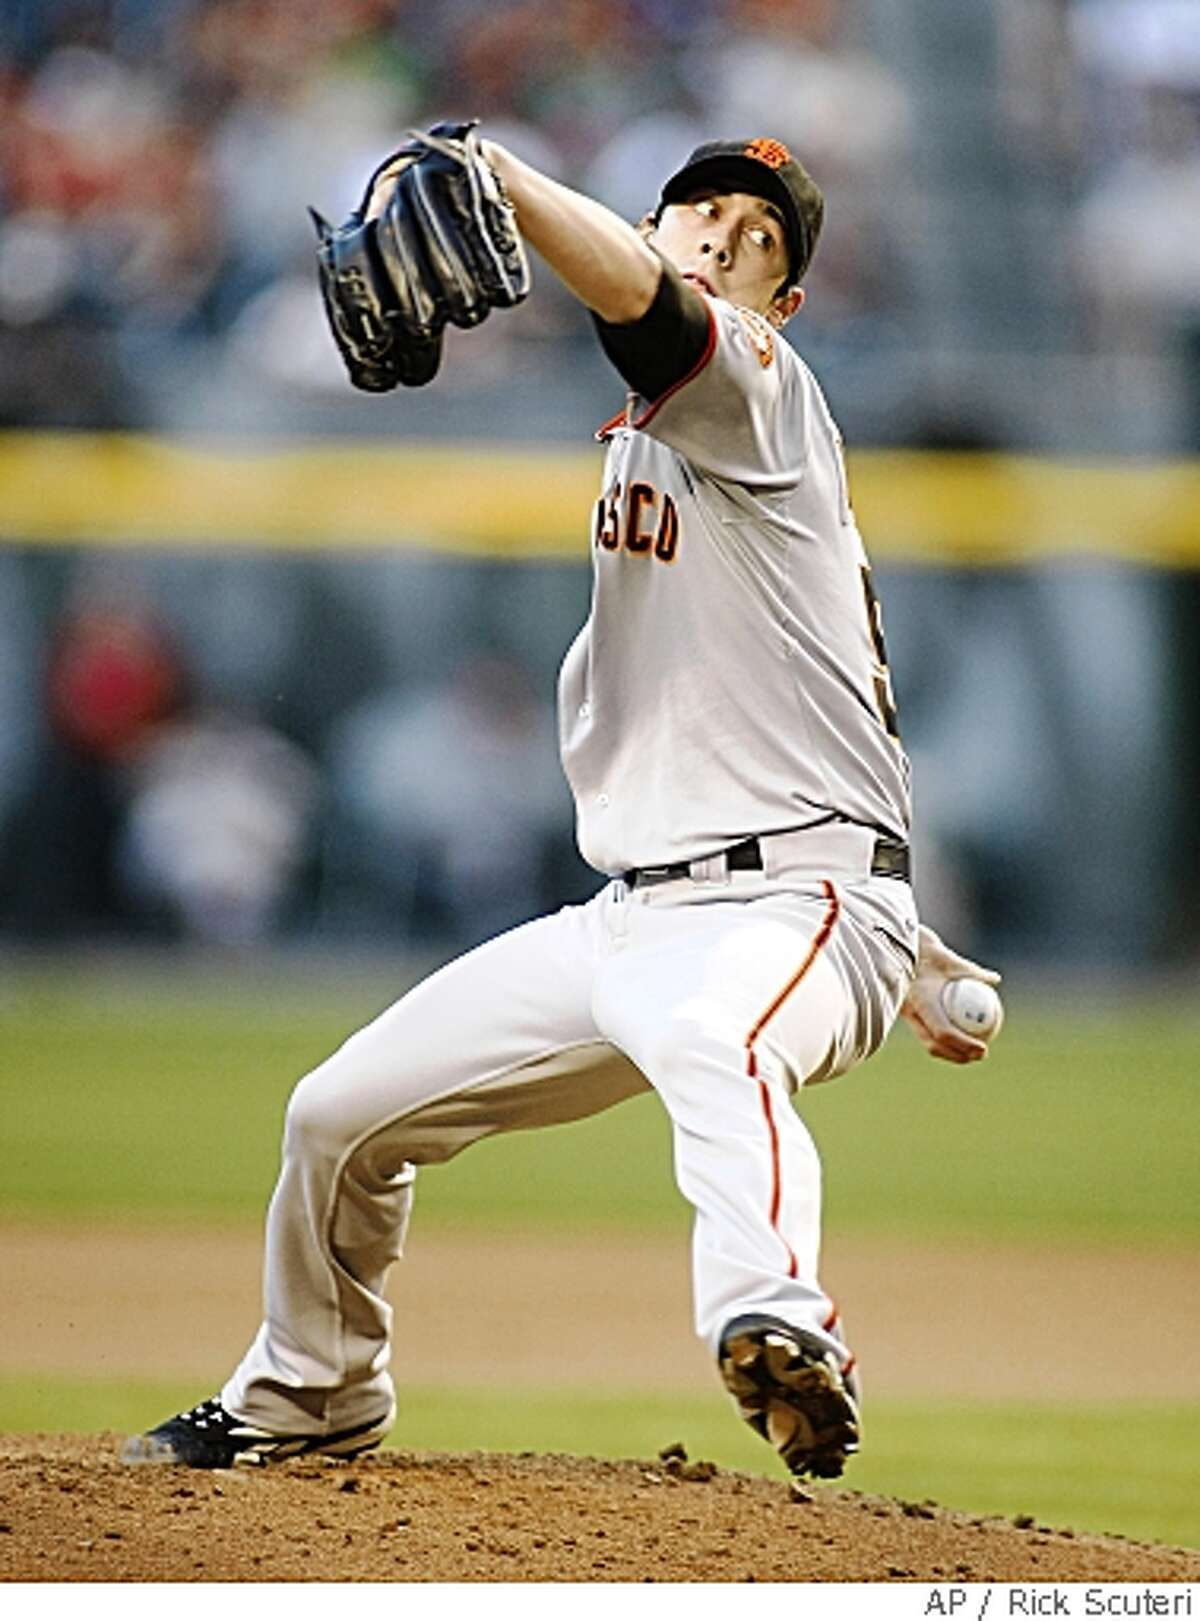 San Francisco Giants pitcher Tim Lincecum throws against the Arizona Diamondbacks in the first inning during a National League baseball game on Tuesday, May 27, 2008, in Phoenix. (AP Photo/Rick Scuteri)